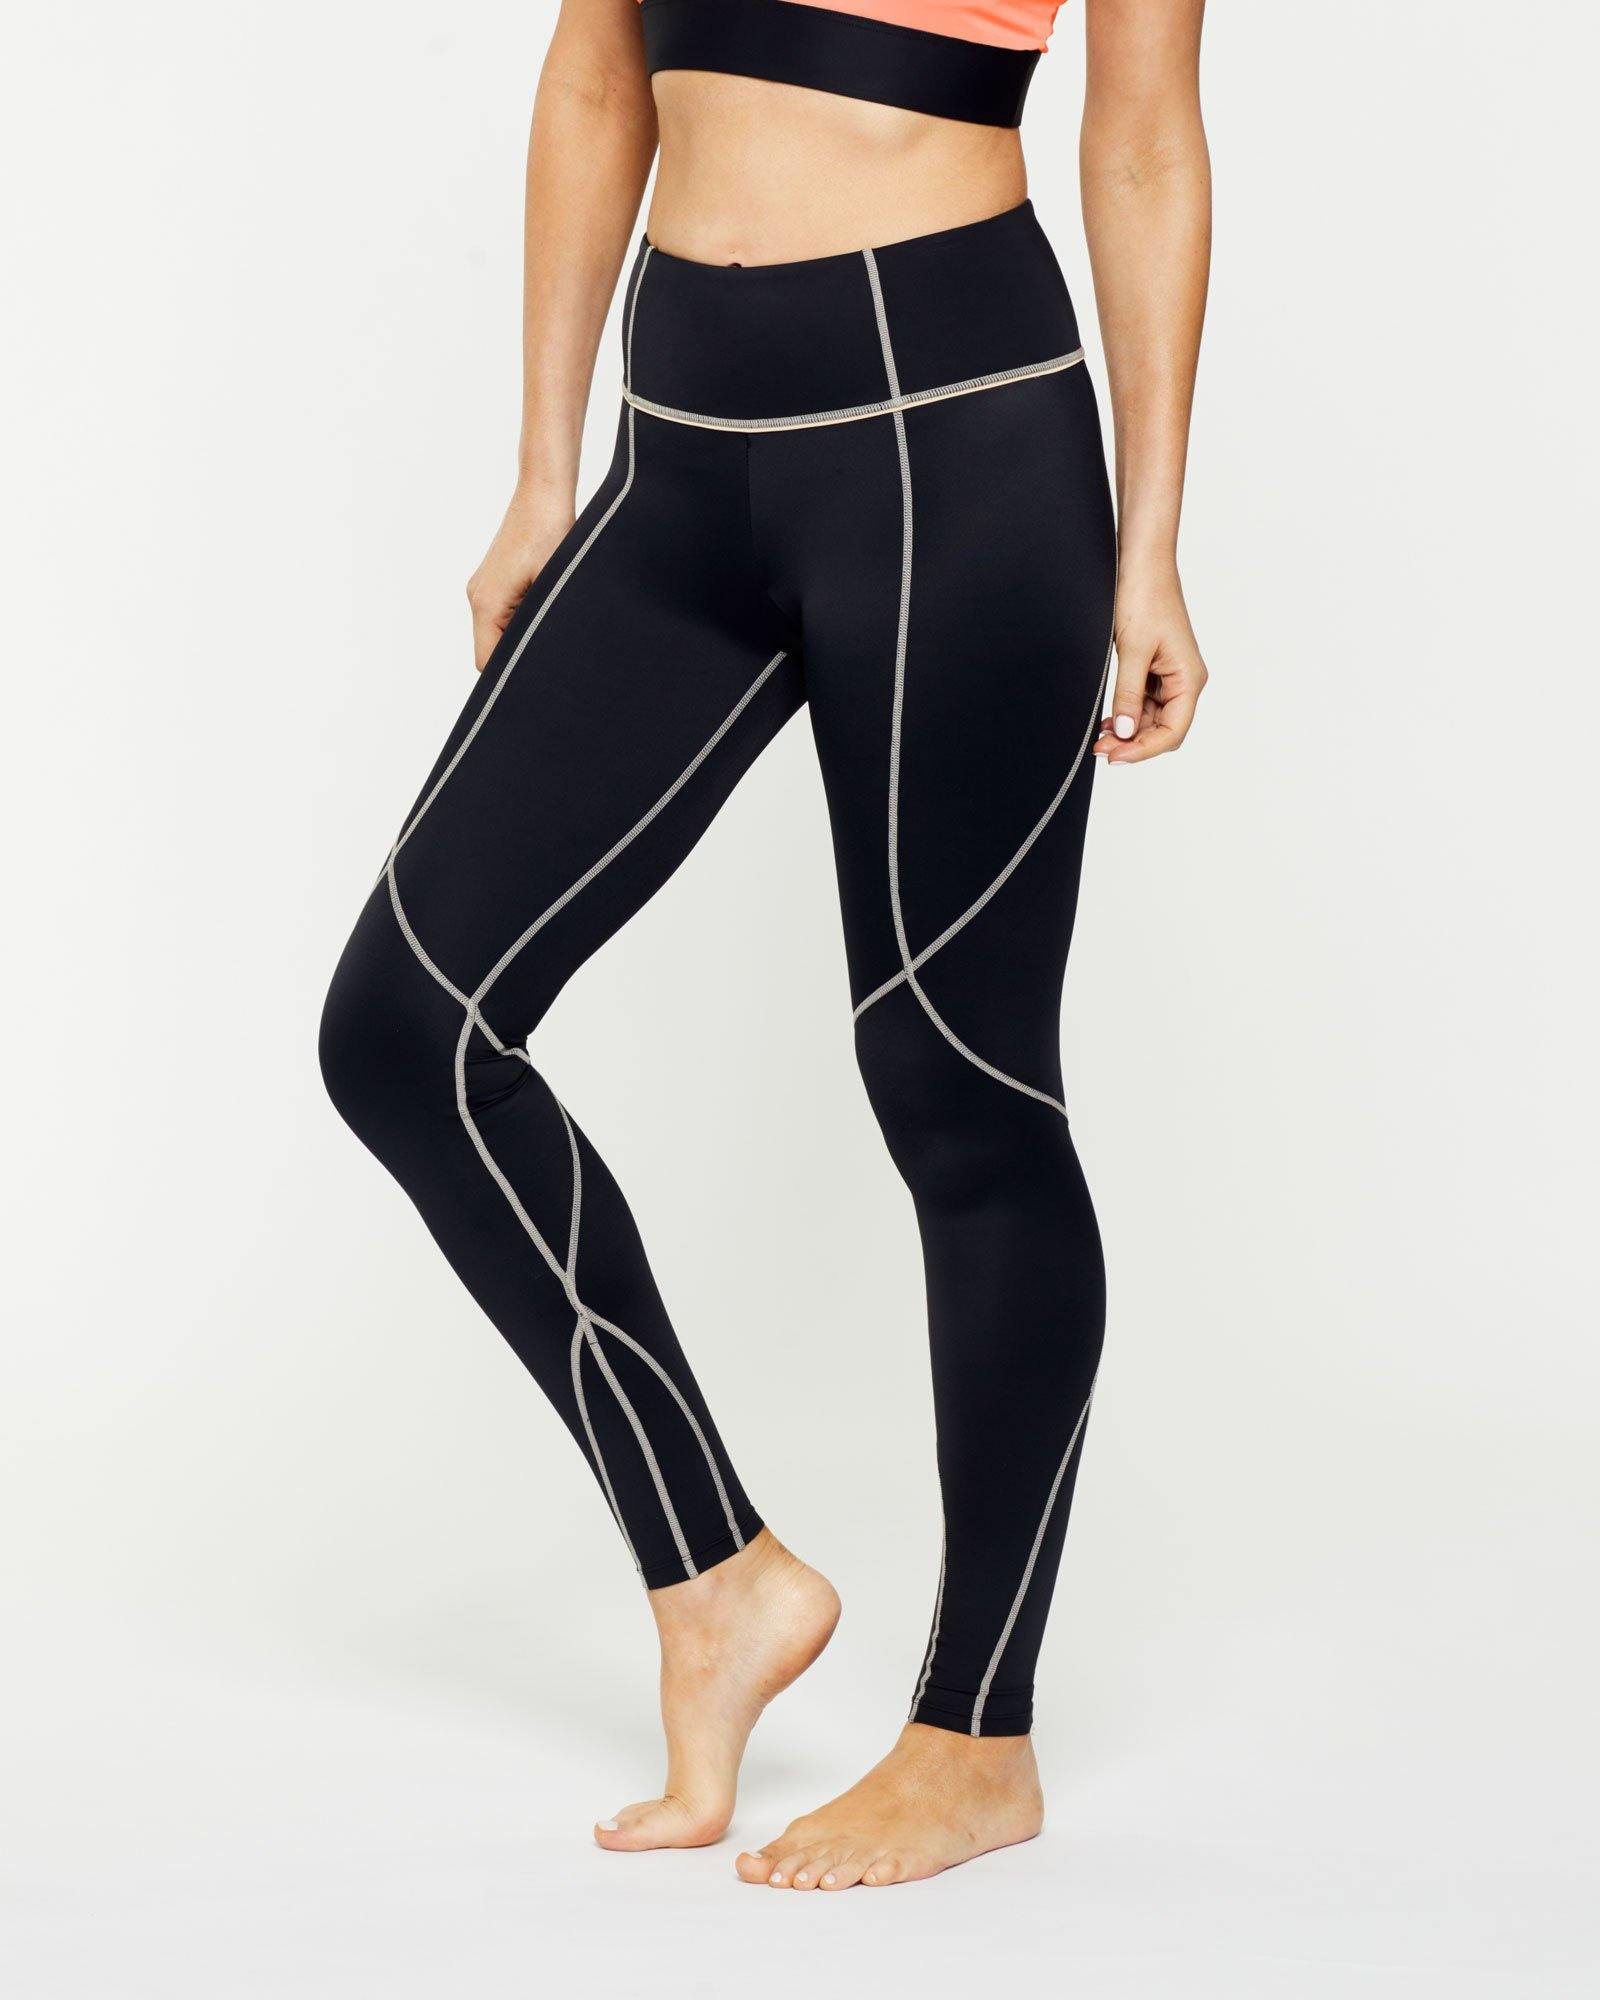 Warrior Vastus mid waist full length legging with contrast stitching, side view